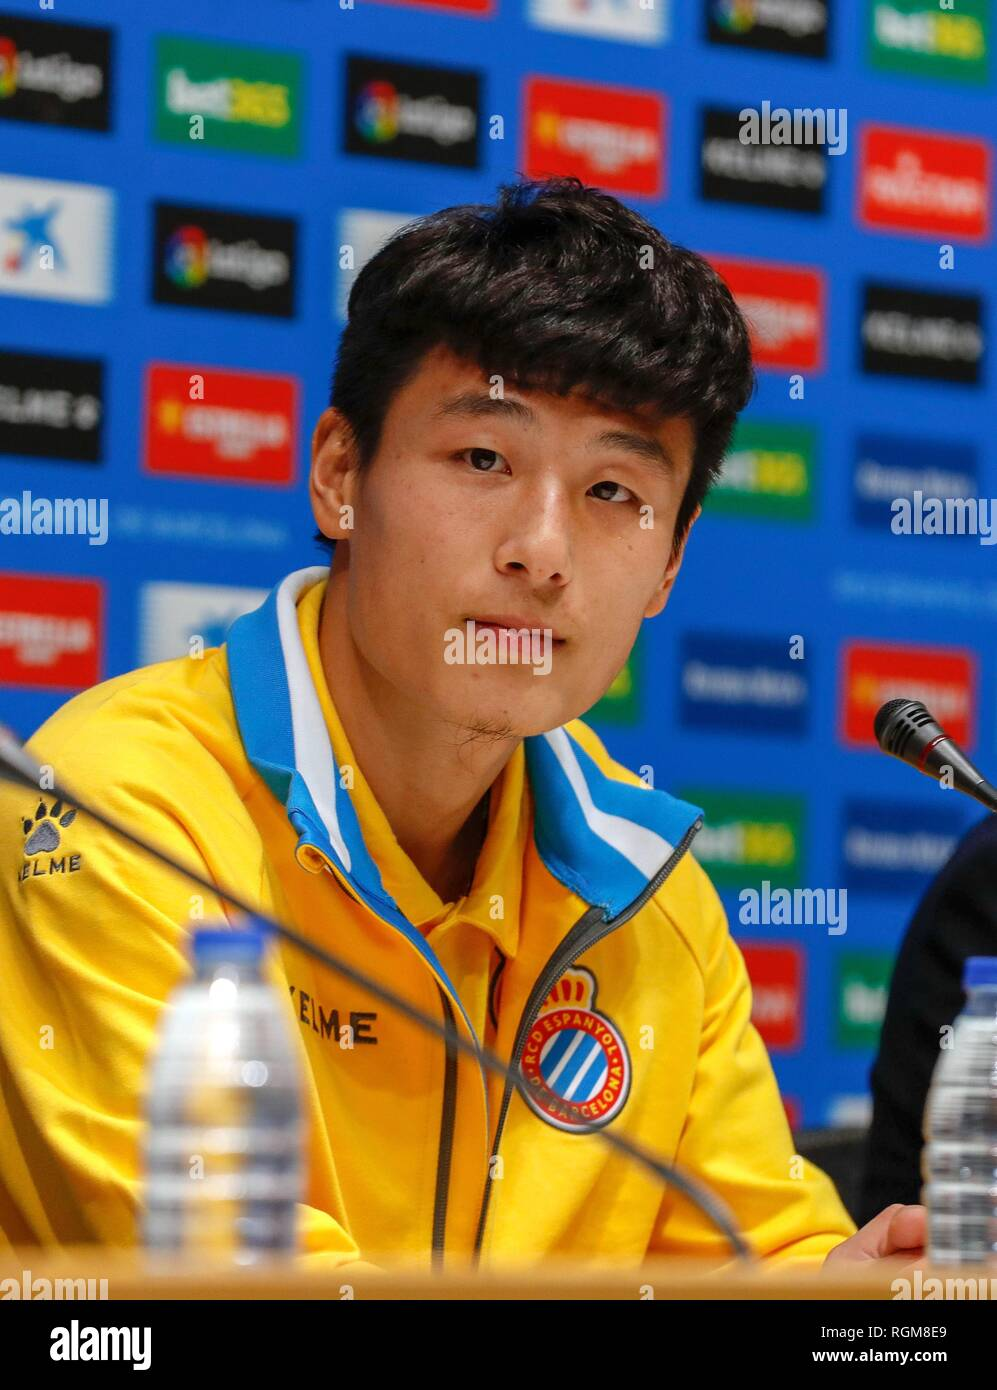 (190130) -- MADRID, Jan. 30, 2019 (Xinhua) -- Wu Lei attends his first press conference held by RCD Espanyol in Barcelona, Spain, Jan. 29, 2019. Spanish Liga Santander club, Espanyol presented the new coming Chinese striker Wu Lei to the fans and press on Tuesday. (Xinhua/Joan Gosa) - Stock Image